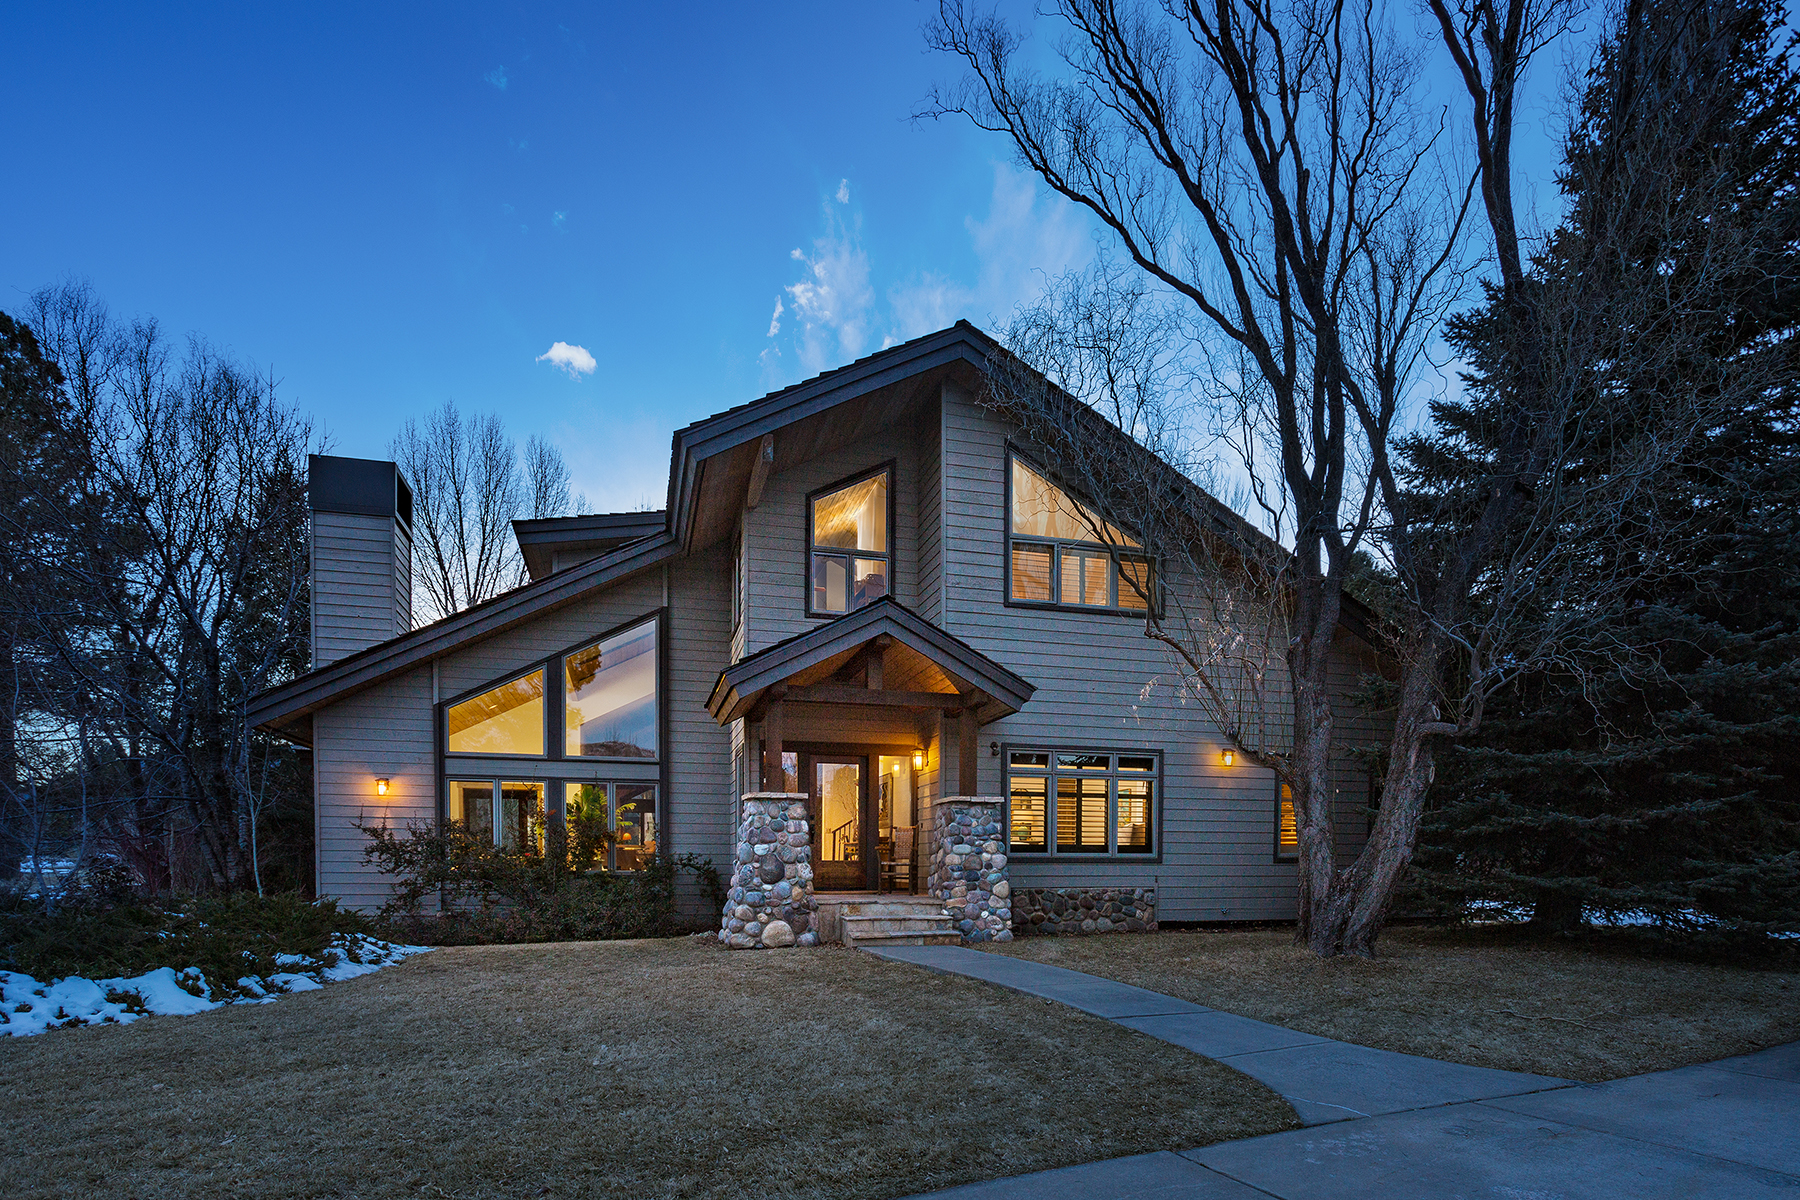 Single Family Home for Sale at Cottonwood Creek 316 Cottonwood Creek Road Durango, Colorado 81301 United States